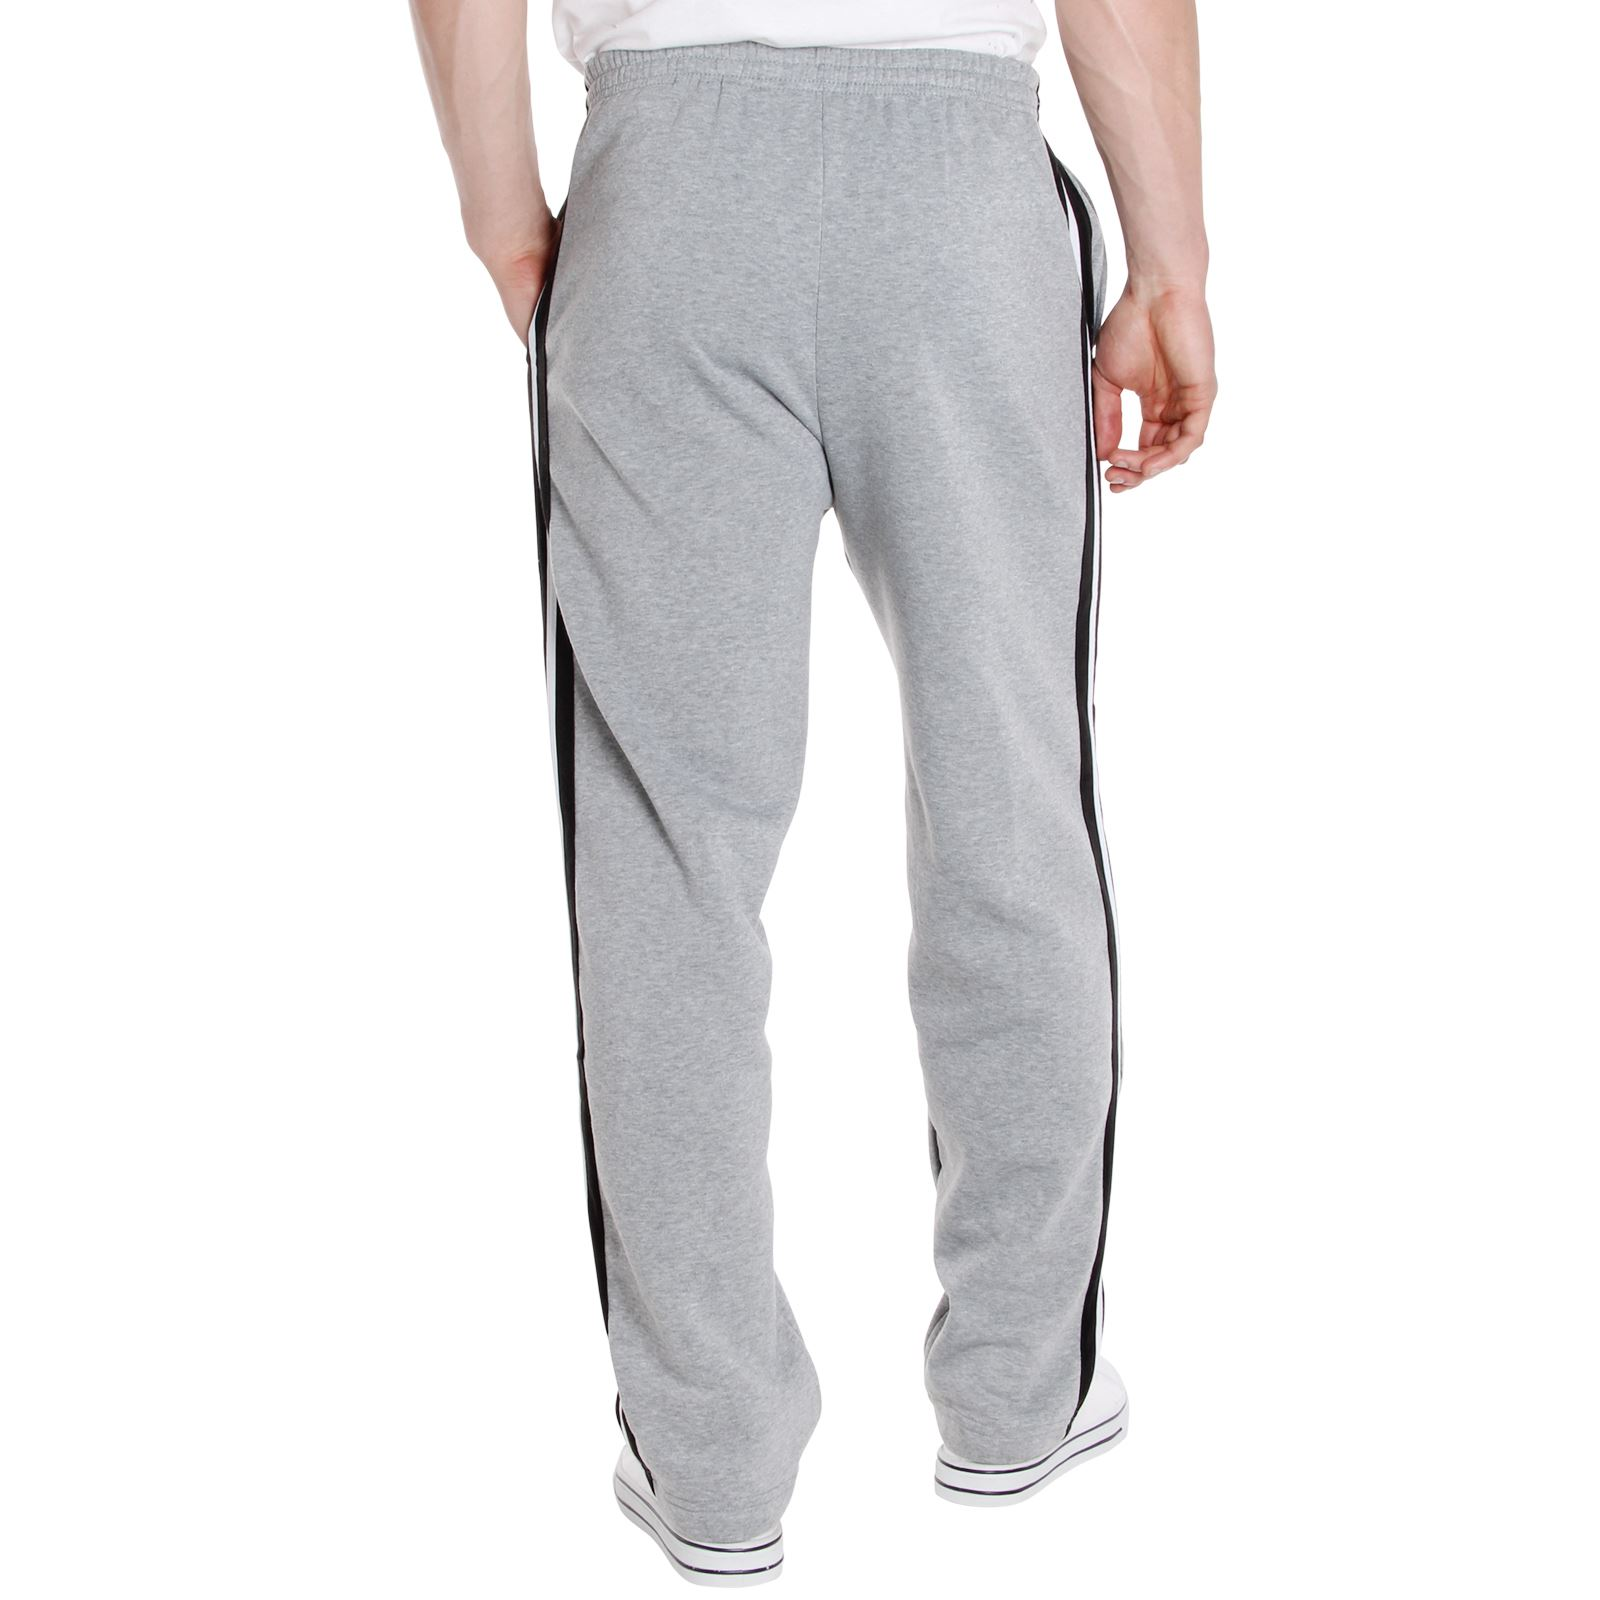 Mens-Tracksuit-Bottoms-Striped-Joggers-Jogging-Trousers-Fleece-Pants-Casual-Work thumbnail 24